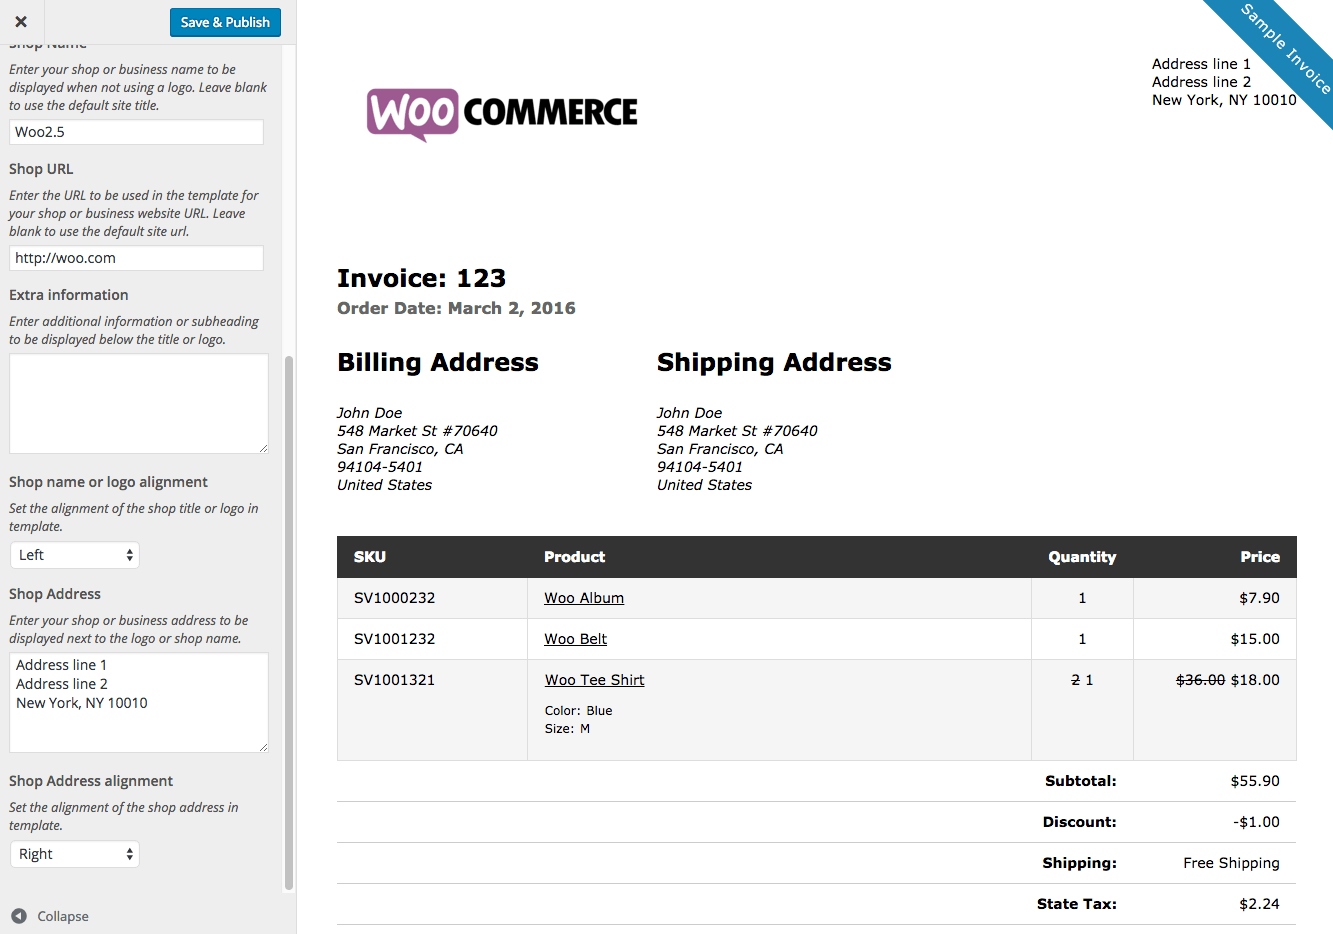 Carsforlessus  Pretty Woocommerce Print Invoices Amp Packing Lists  Woocommerce Docs With Inspiring Woocommerce Print Invoices  Packing Lists Customizer With Endearing No Vat Invoice Also Excel Sales Invoice Template In Addition Free Invoice Templates Printable And How To Layout An Invoice As Well As Ebay Invoice Software Additionally Sample Invoice Free From Docswoocommercecom With Carsforlessus  Inspiring Woocommerce Print Invoices Amp Packing Lists  Woocommerce Docs With Endearing Woocommerce Print Invoices  Packing Lists Customizer And Pretty No Vat Invoice Also Excel Sales Invoice Template In Addition Free Invoice Templates Printable From Docswoocommercecom